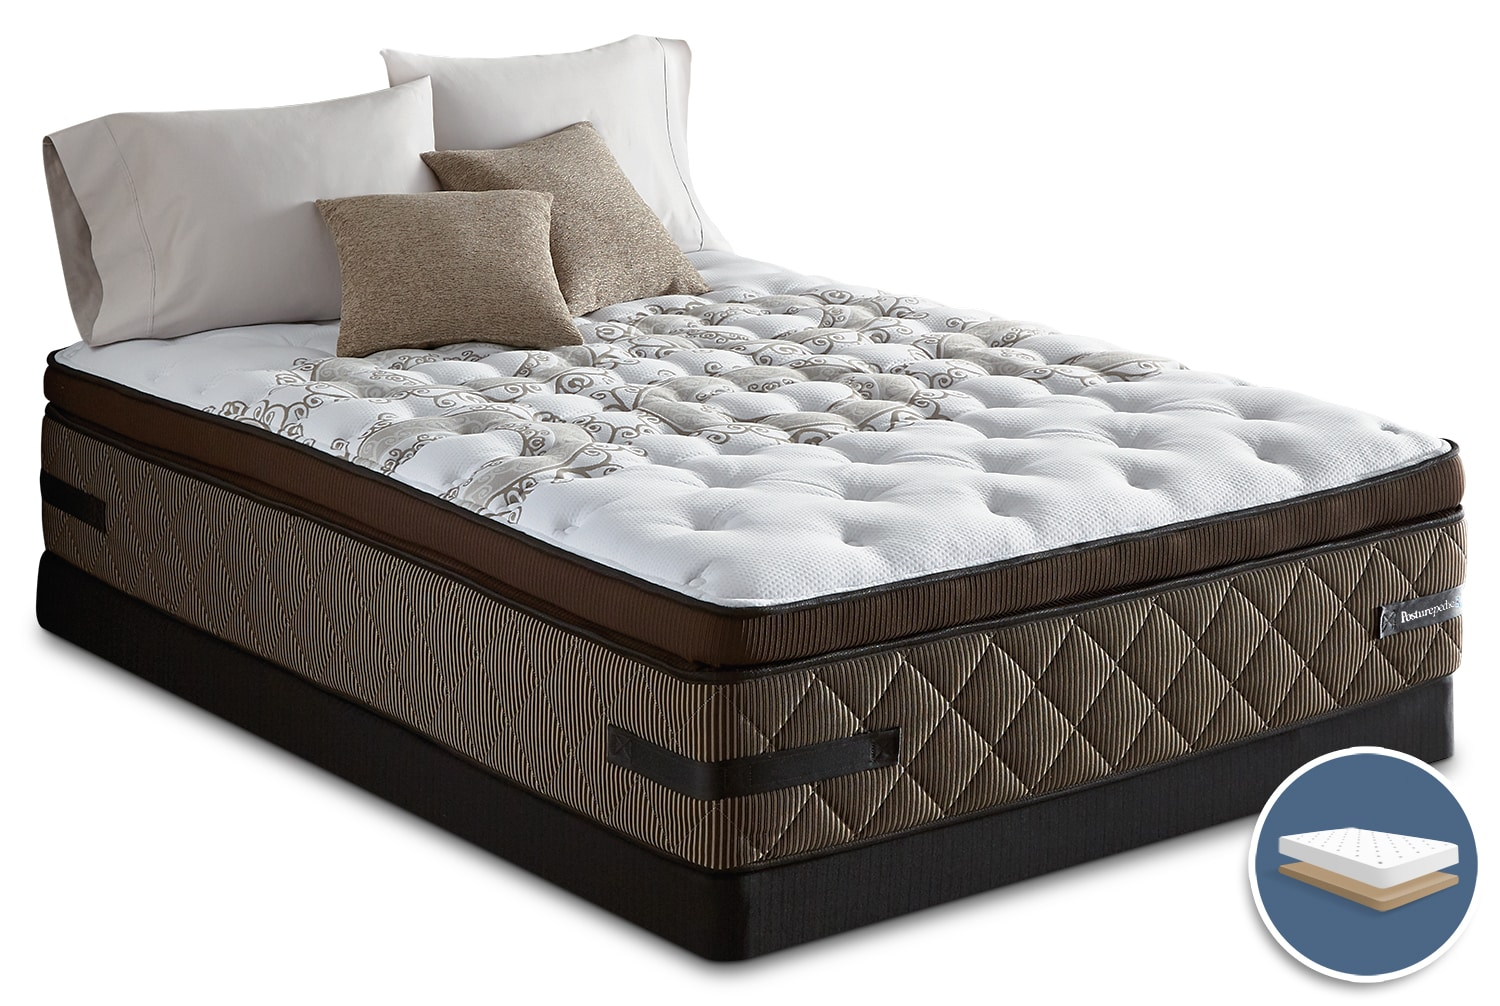 Mattresses and Bedding - Sealy Crown Jewel Sunsera Euro Pillow-Top Plush Low-Profile Queen Mattress Set